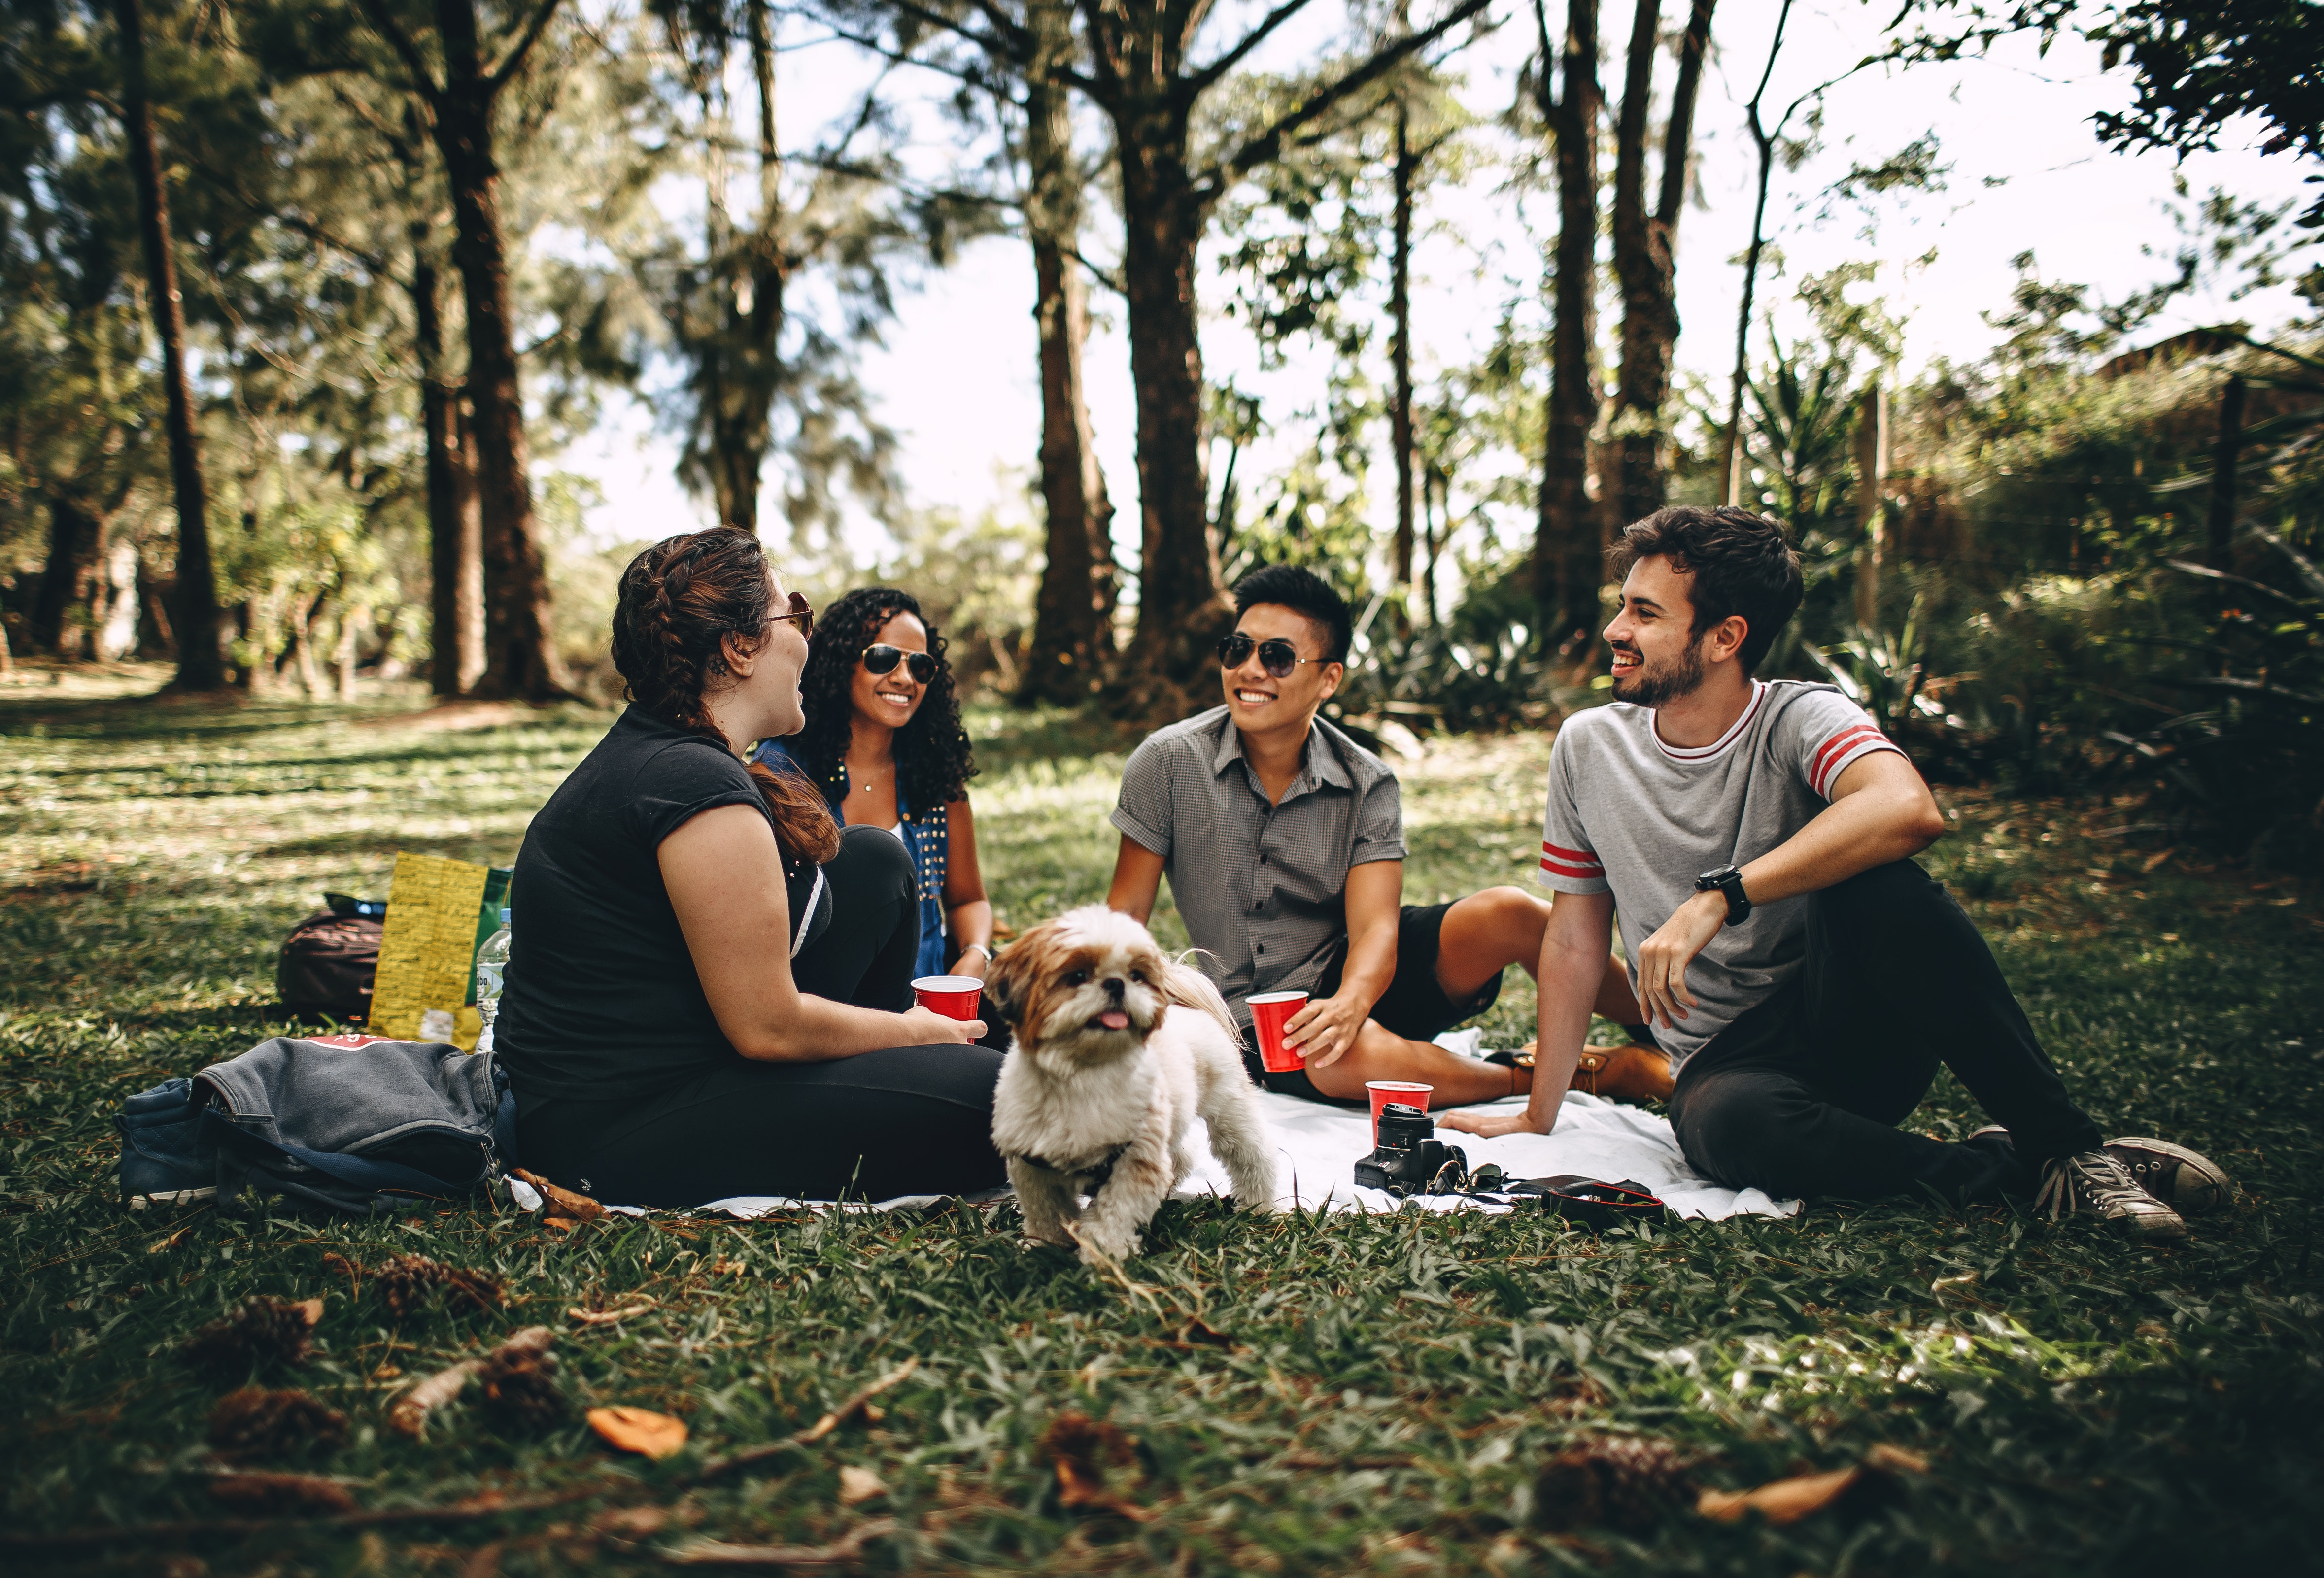 Portland Activities for Hot Summer Days - Portland Living on